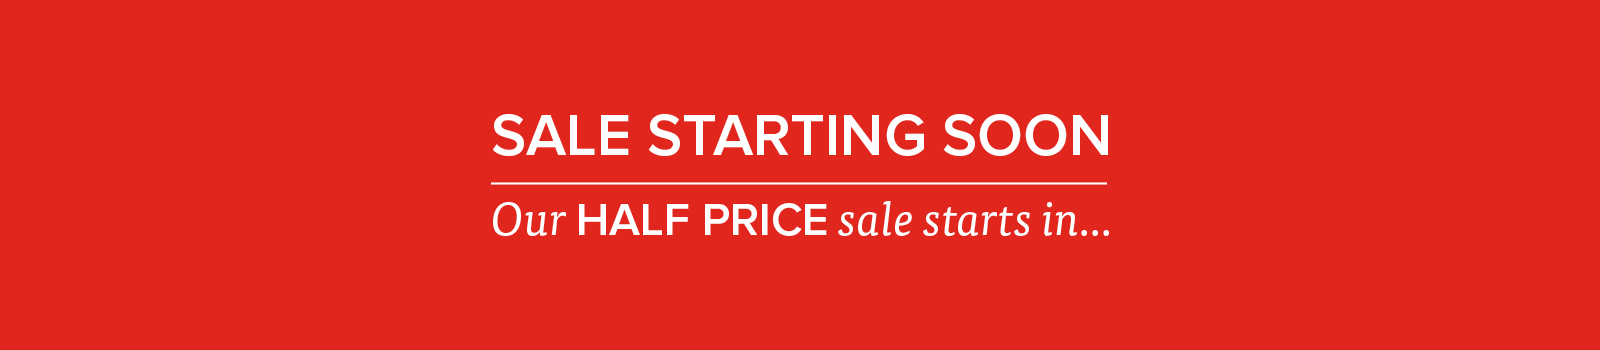 Sale starting soon